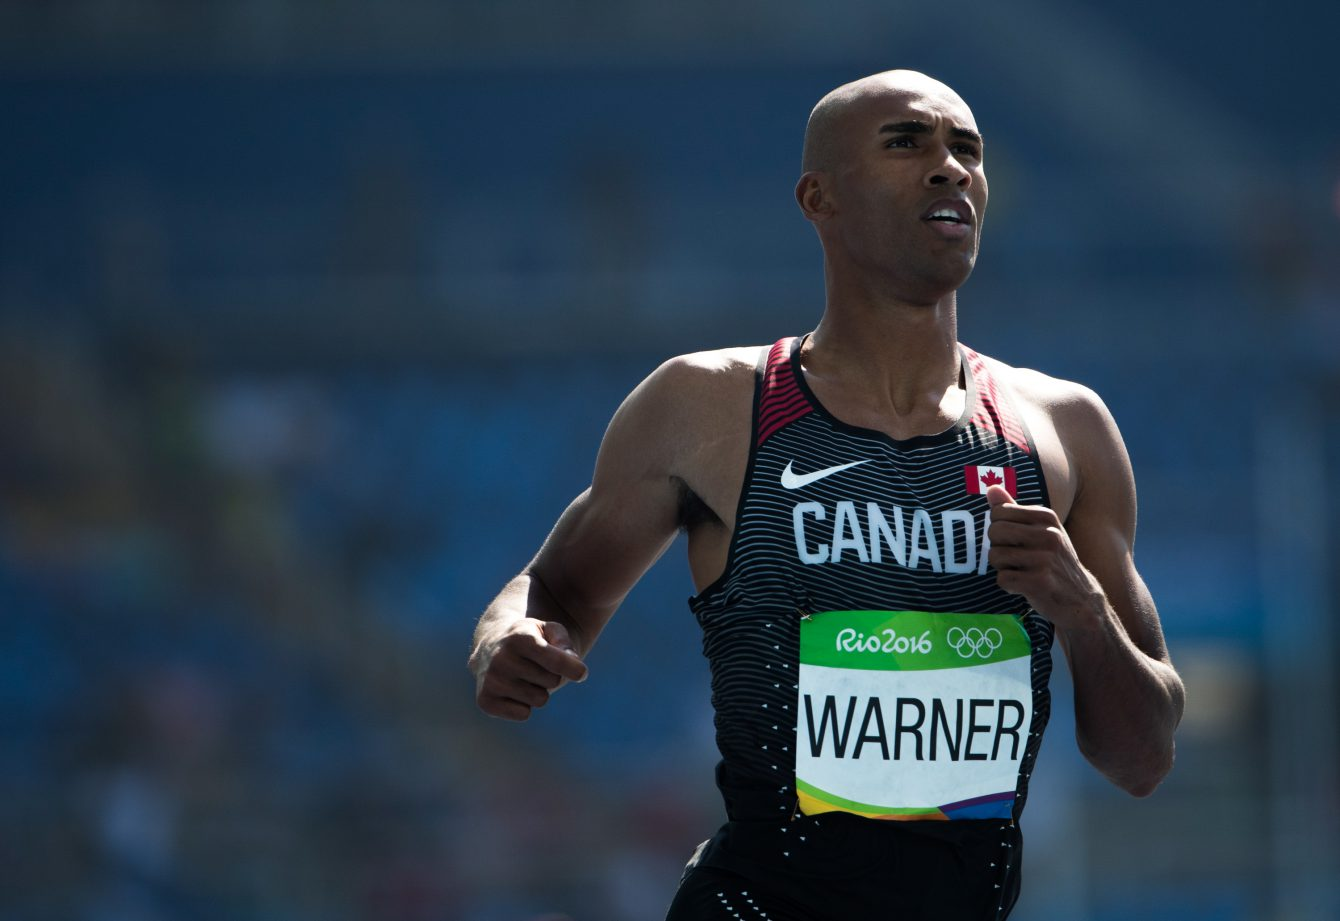 Damian Warner competes in the Decathlon at the Olympic Games in Rio de Janeiro, Brazil, Wednesday, August 17, 2016. COC Photo by Stephen Hosier